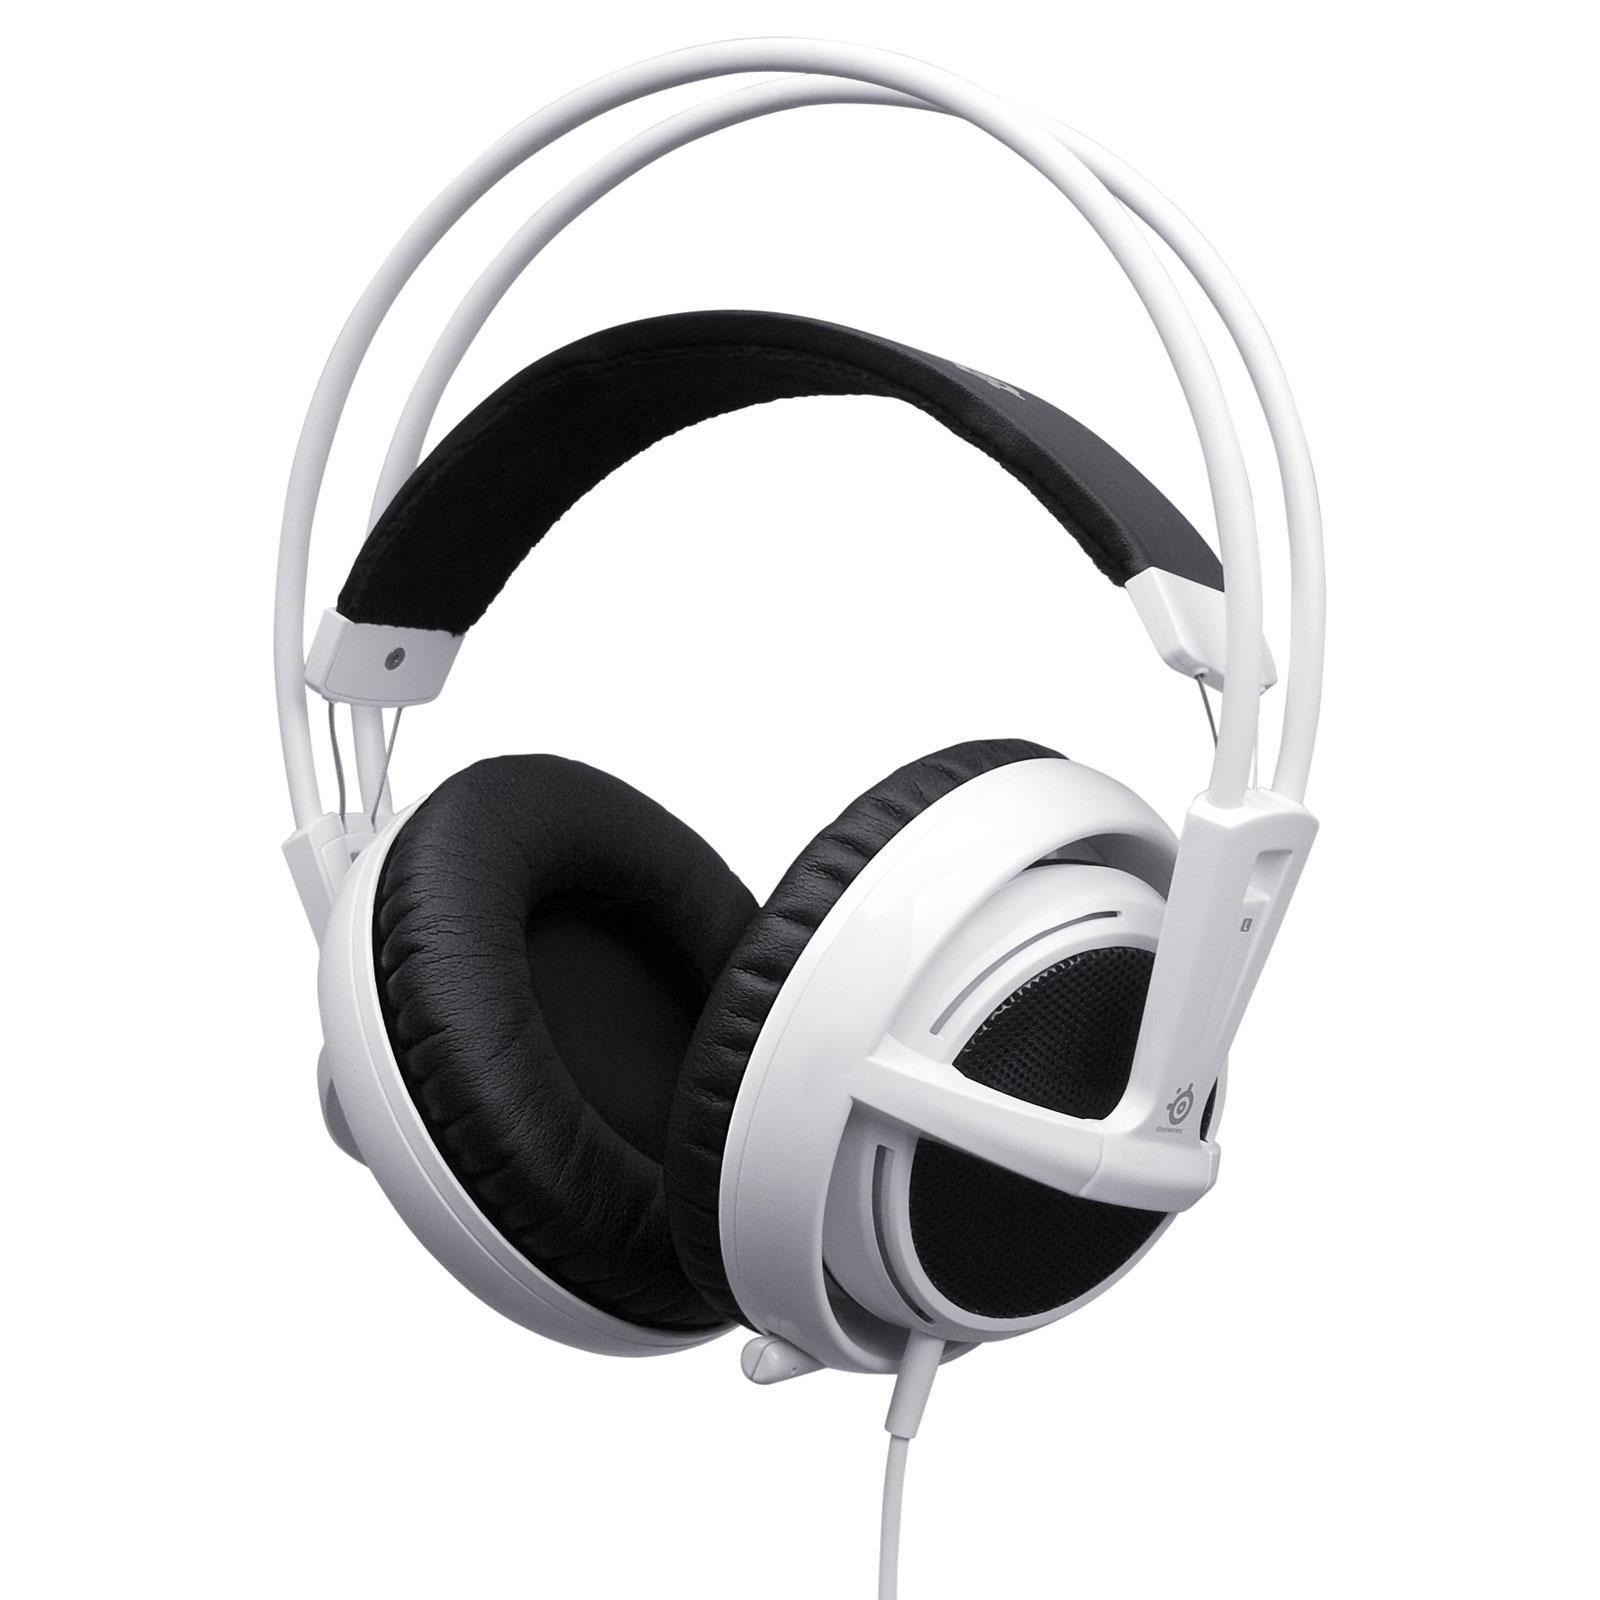 Auriculares Steelseries Siberia V2 - Blanco